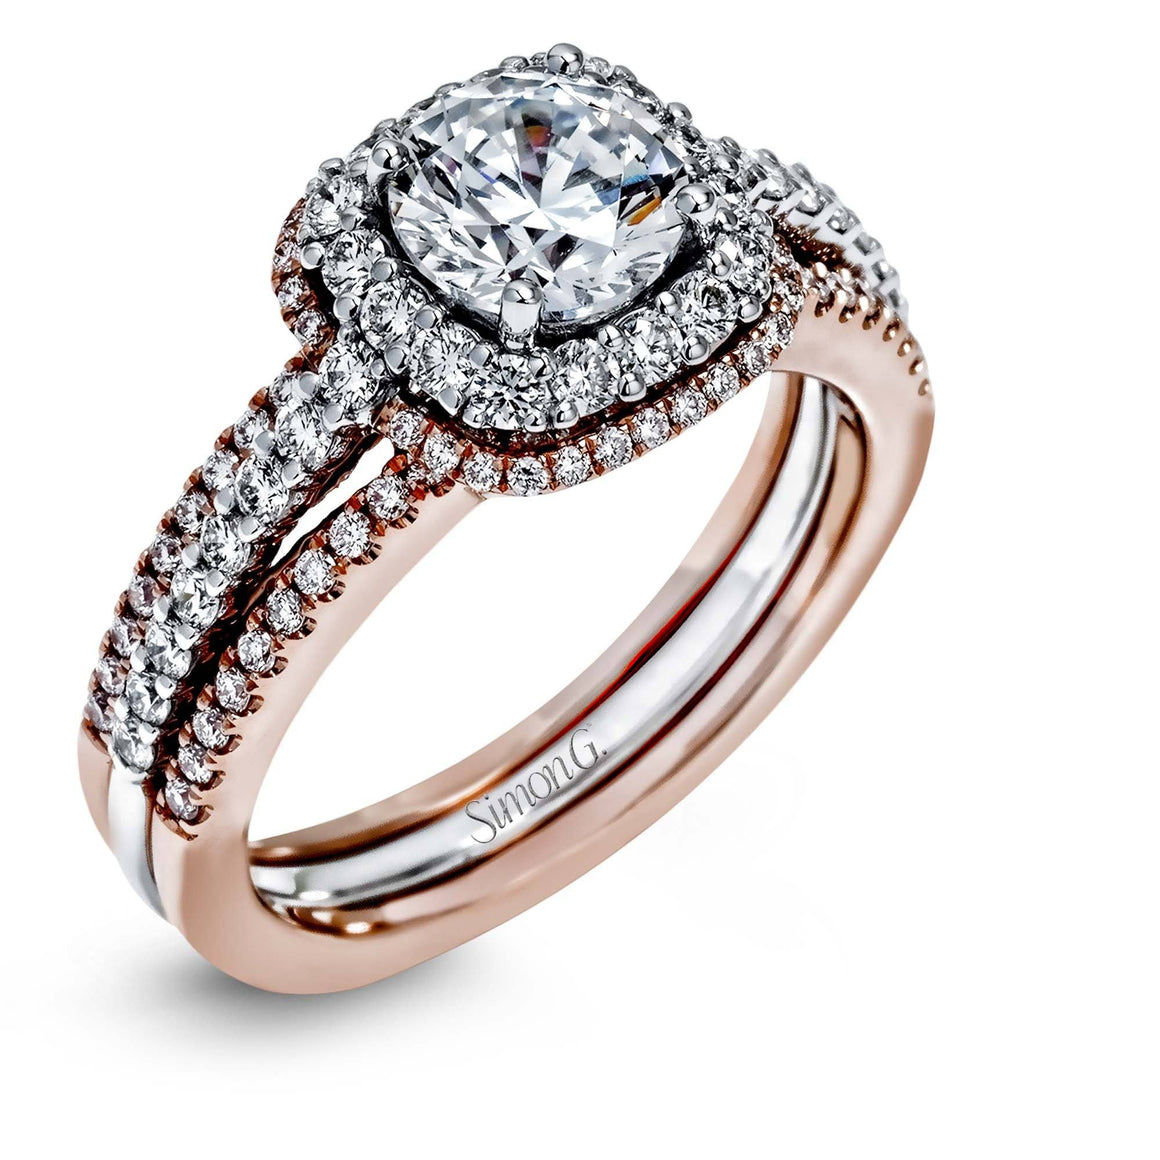 Simon G - MR2474, Engagement Ring Set, Simon G - Birmingham Jewelry